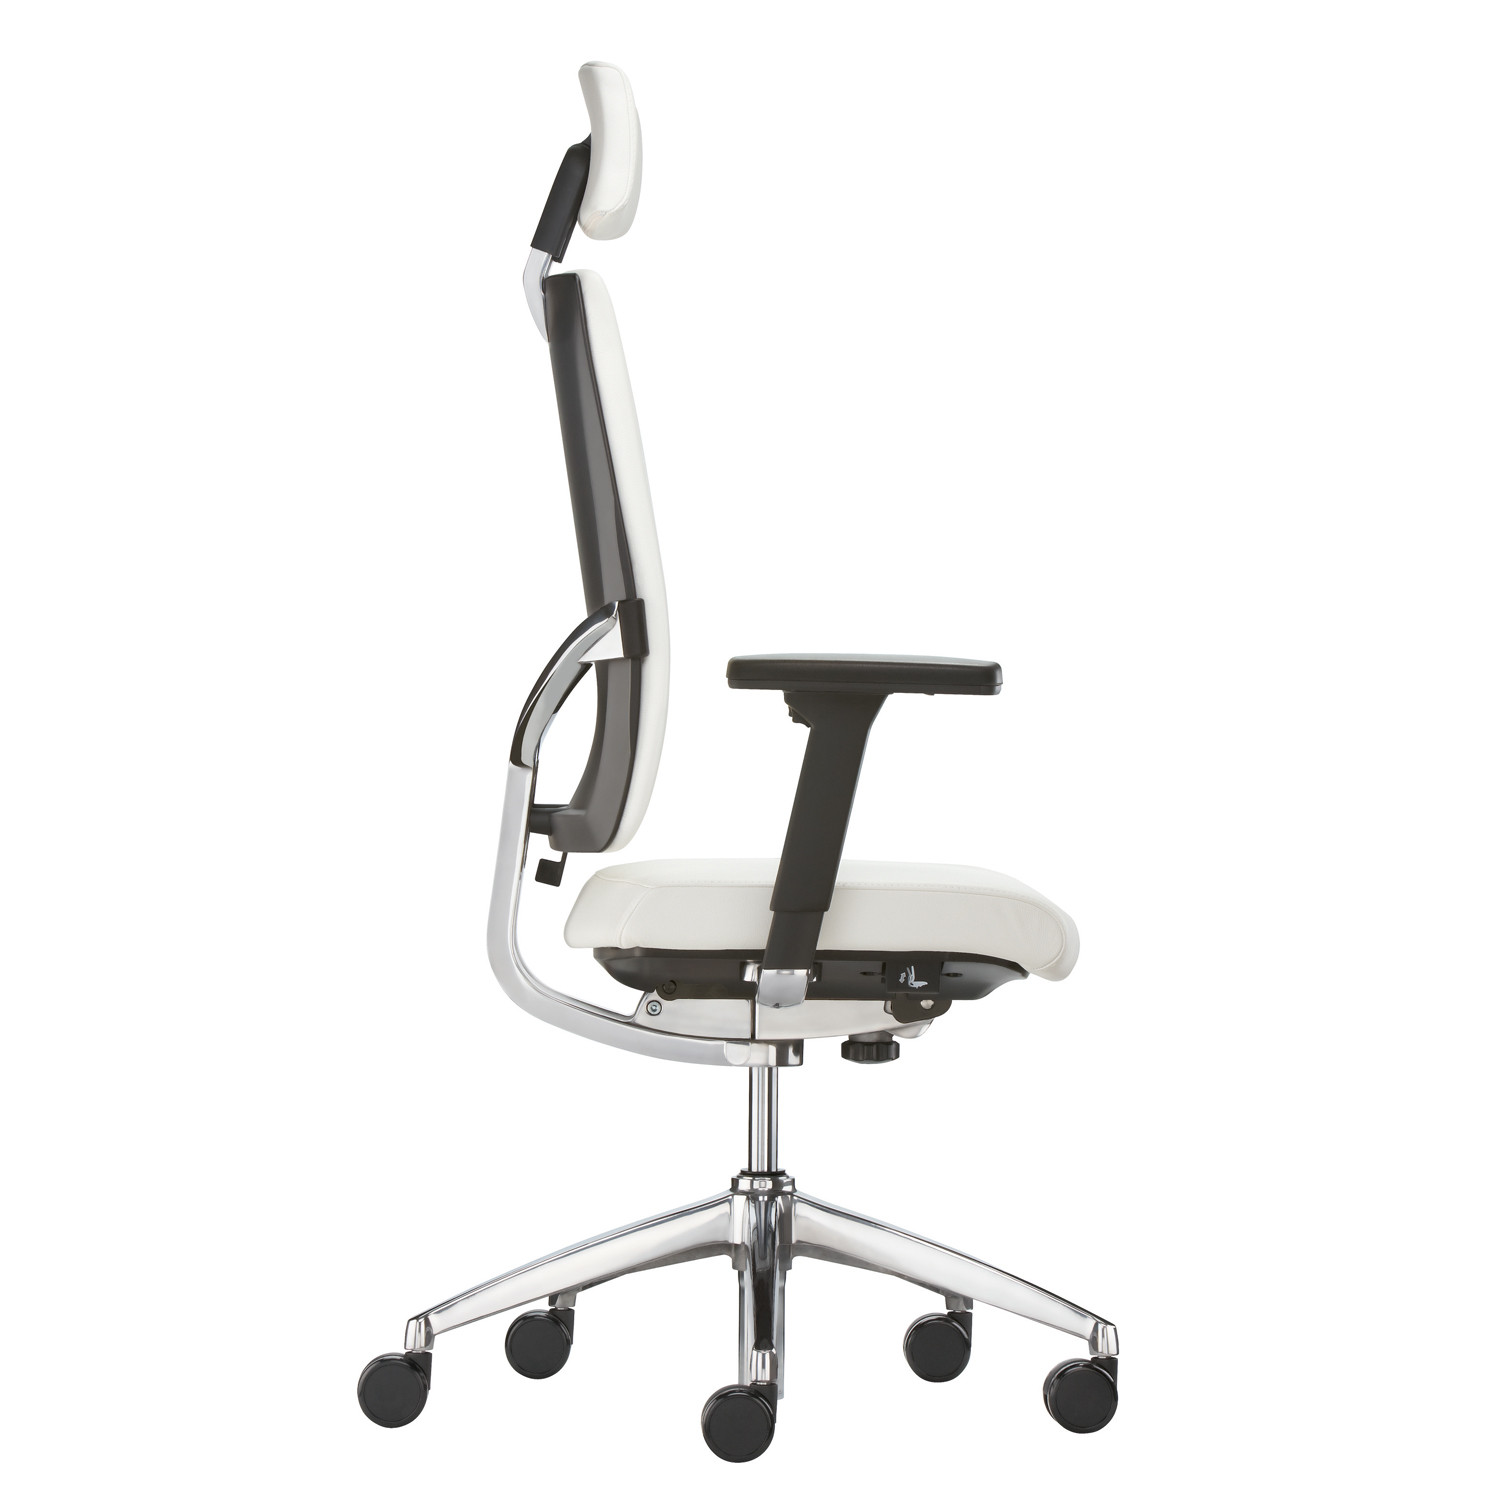 Too 2.0 Chair with Adjustable Headrest